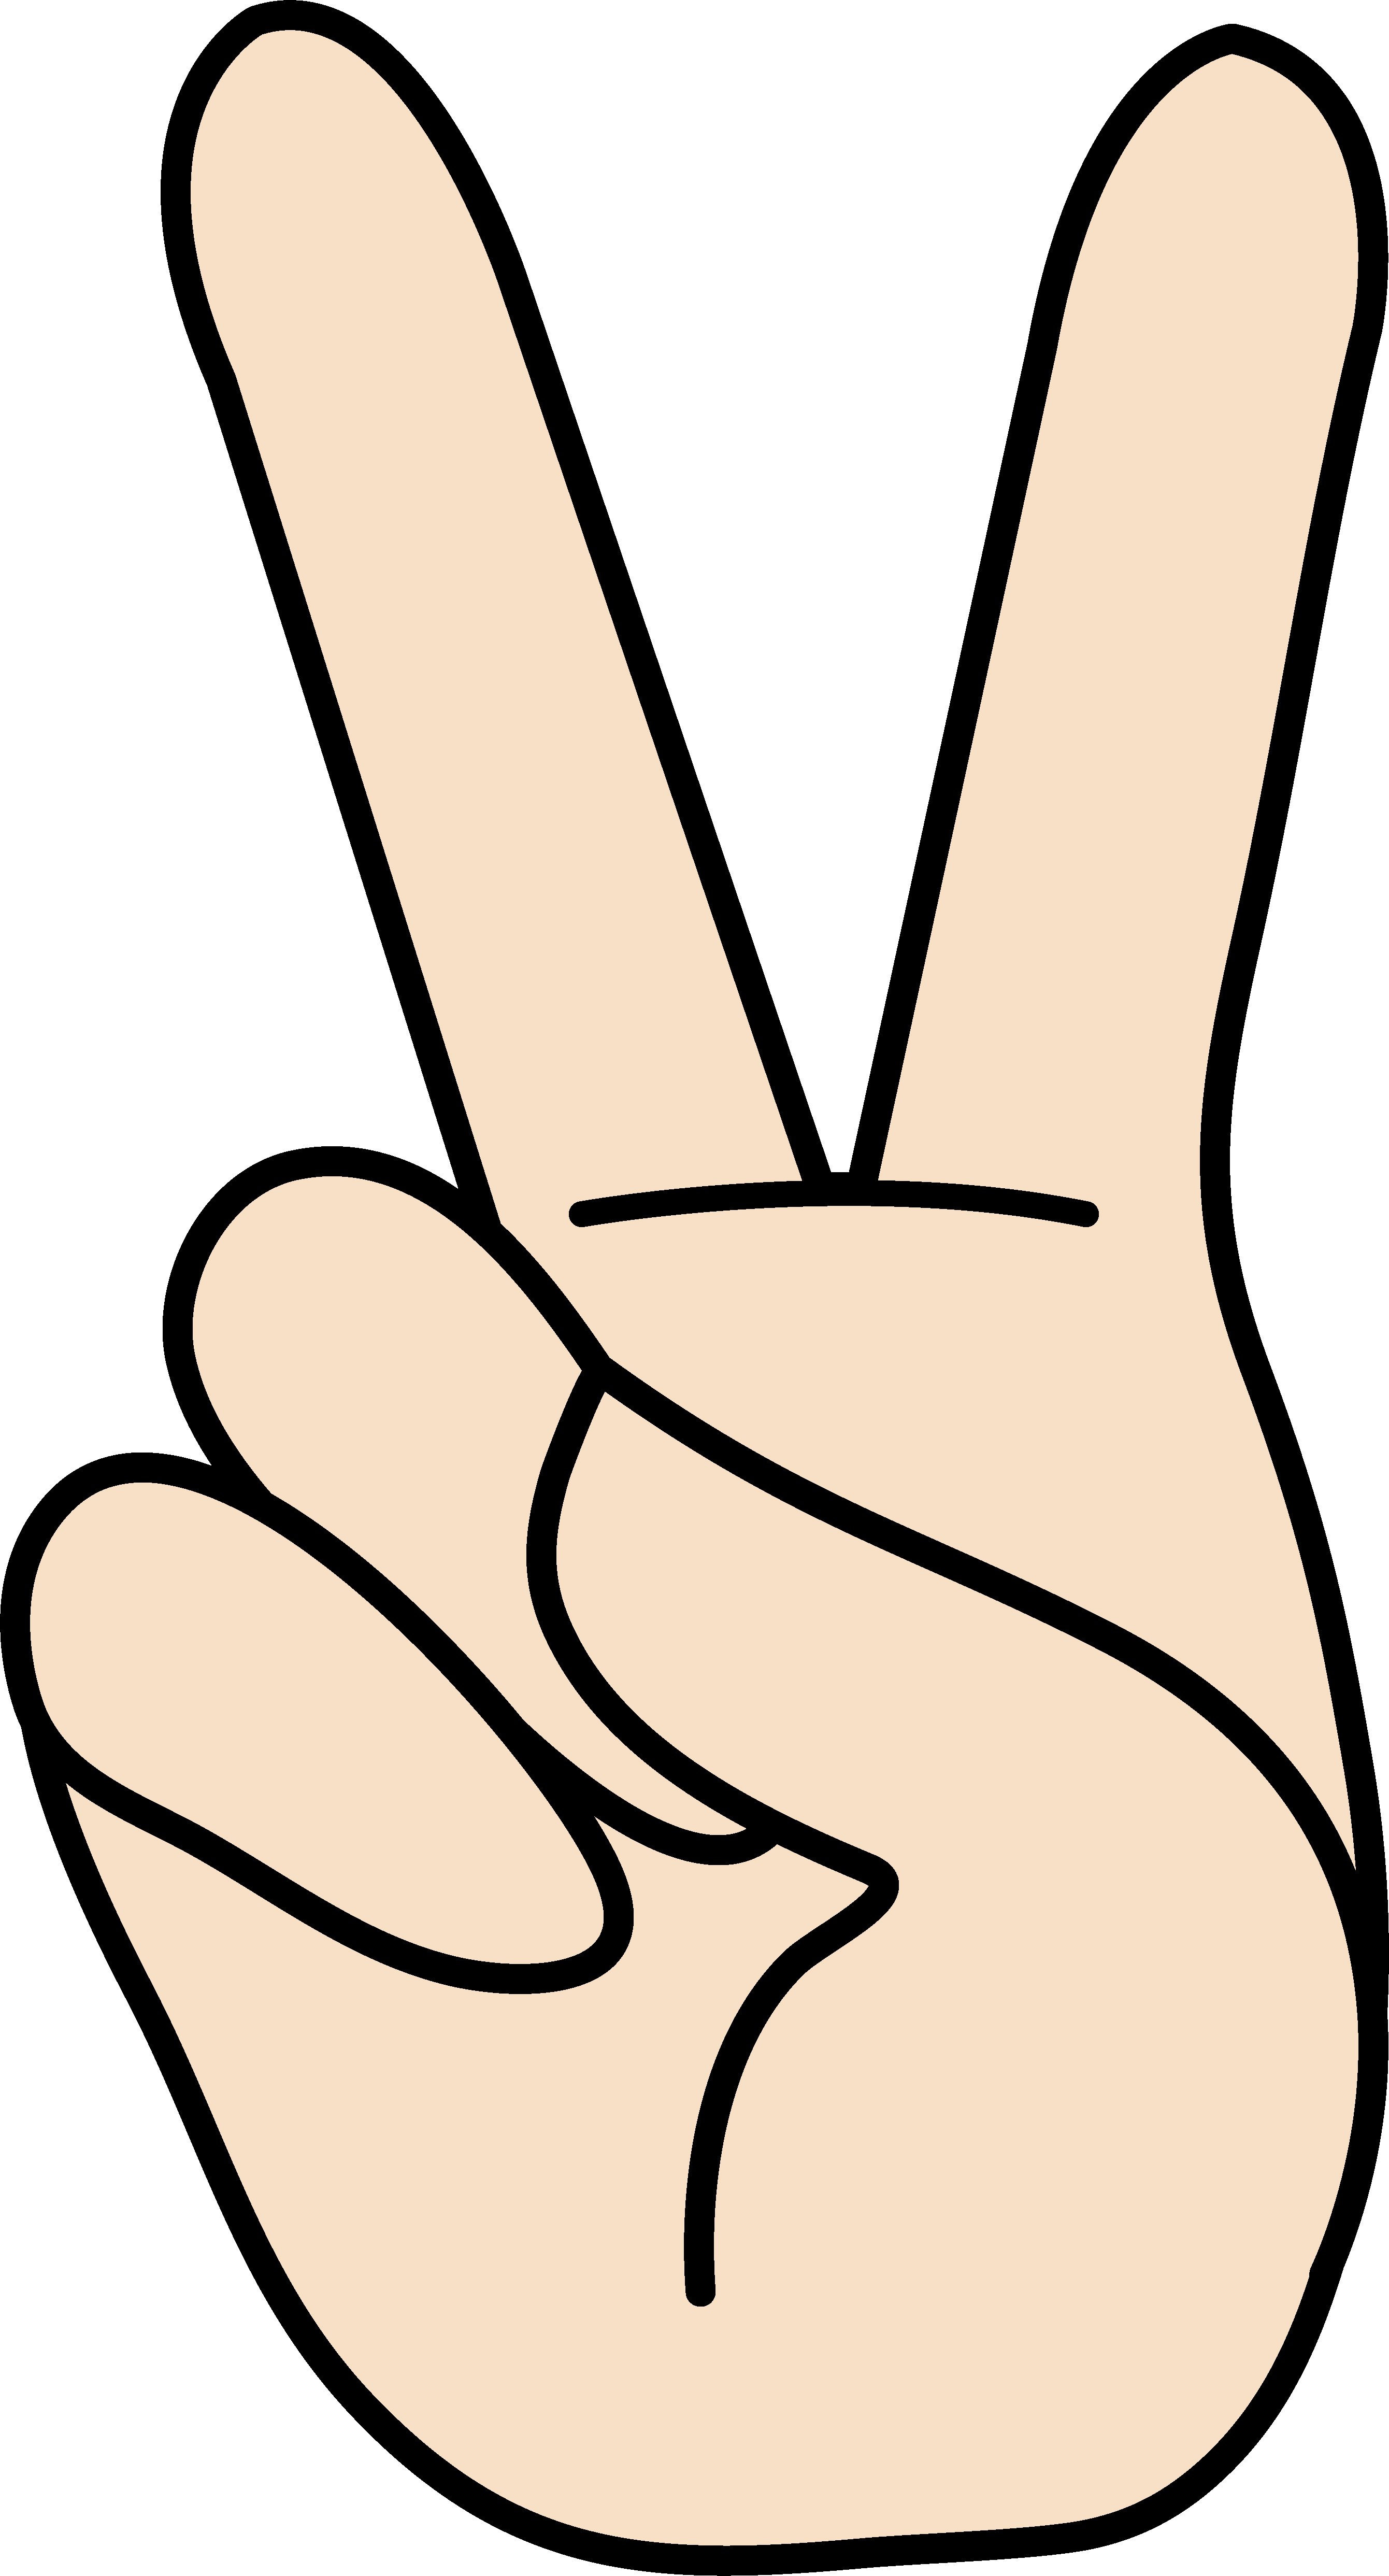 graphic black and white library Fingers clipart. Free download clip art.